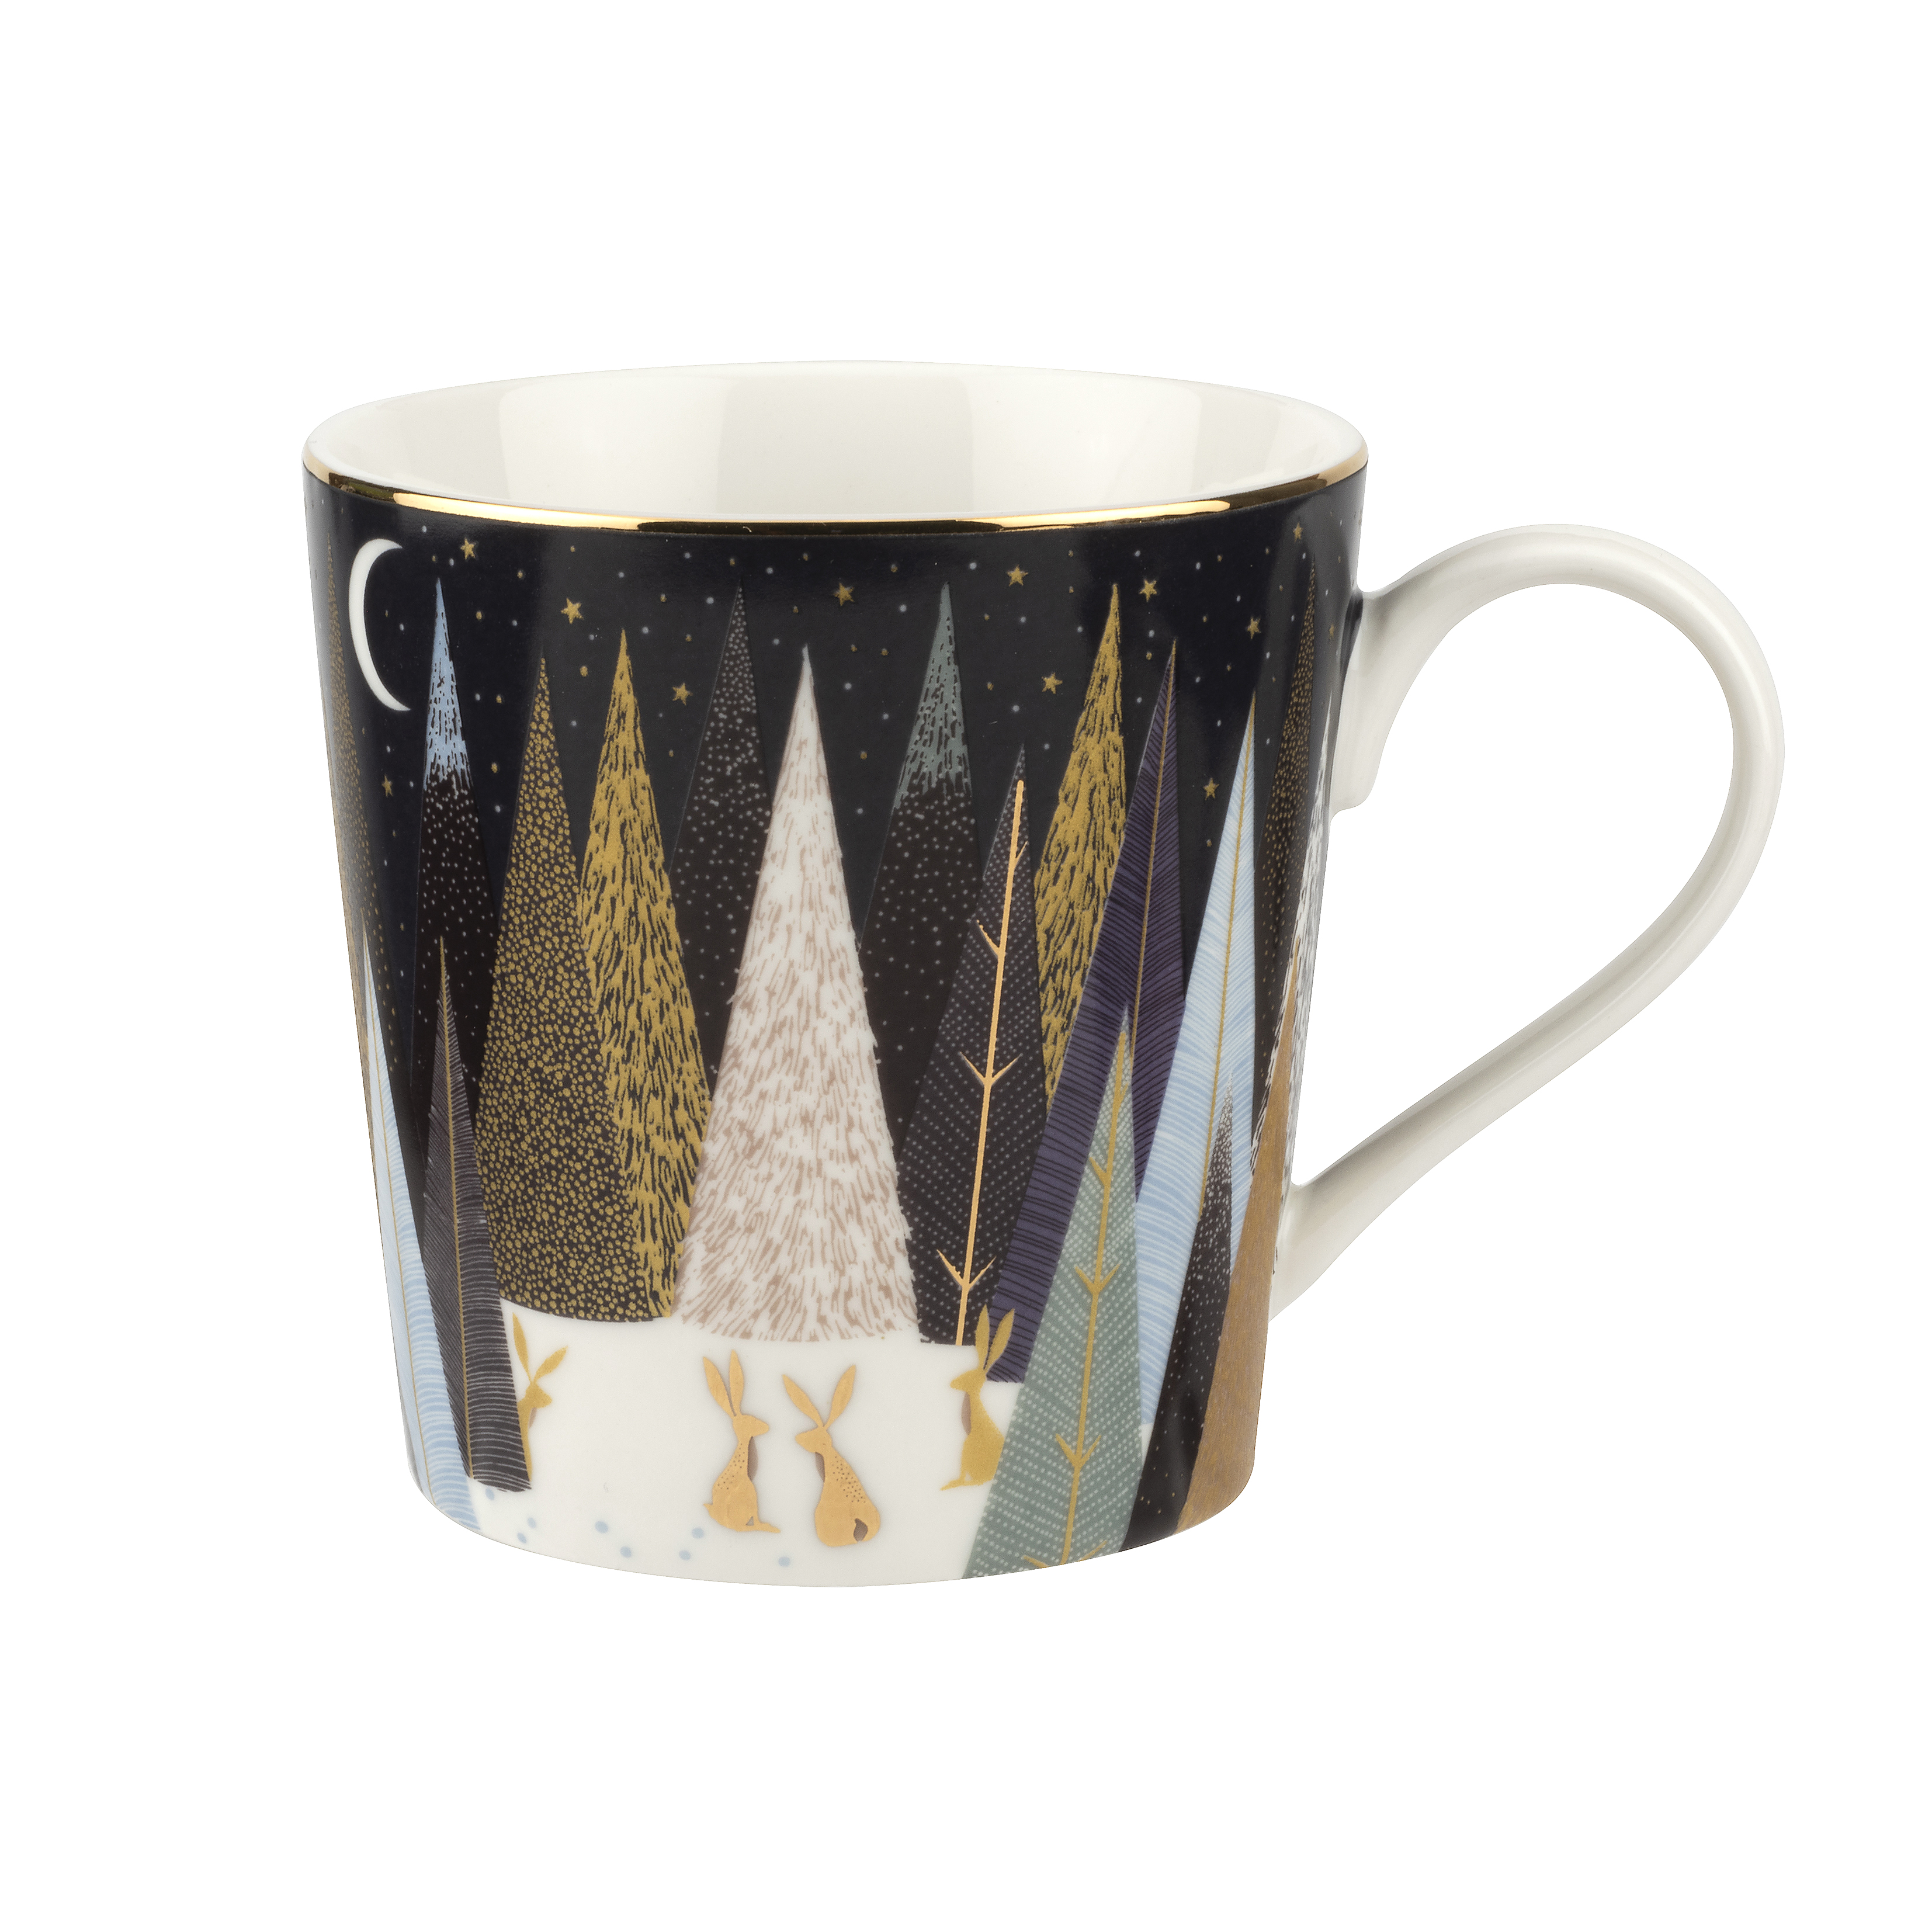 Sara Miller London for Portmeirion Frosted Pines Set of 4 Mugs 12 oz image number 1